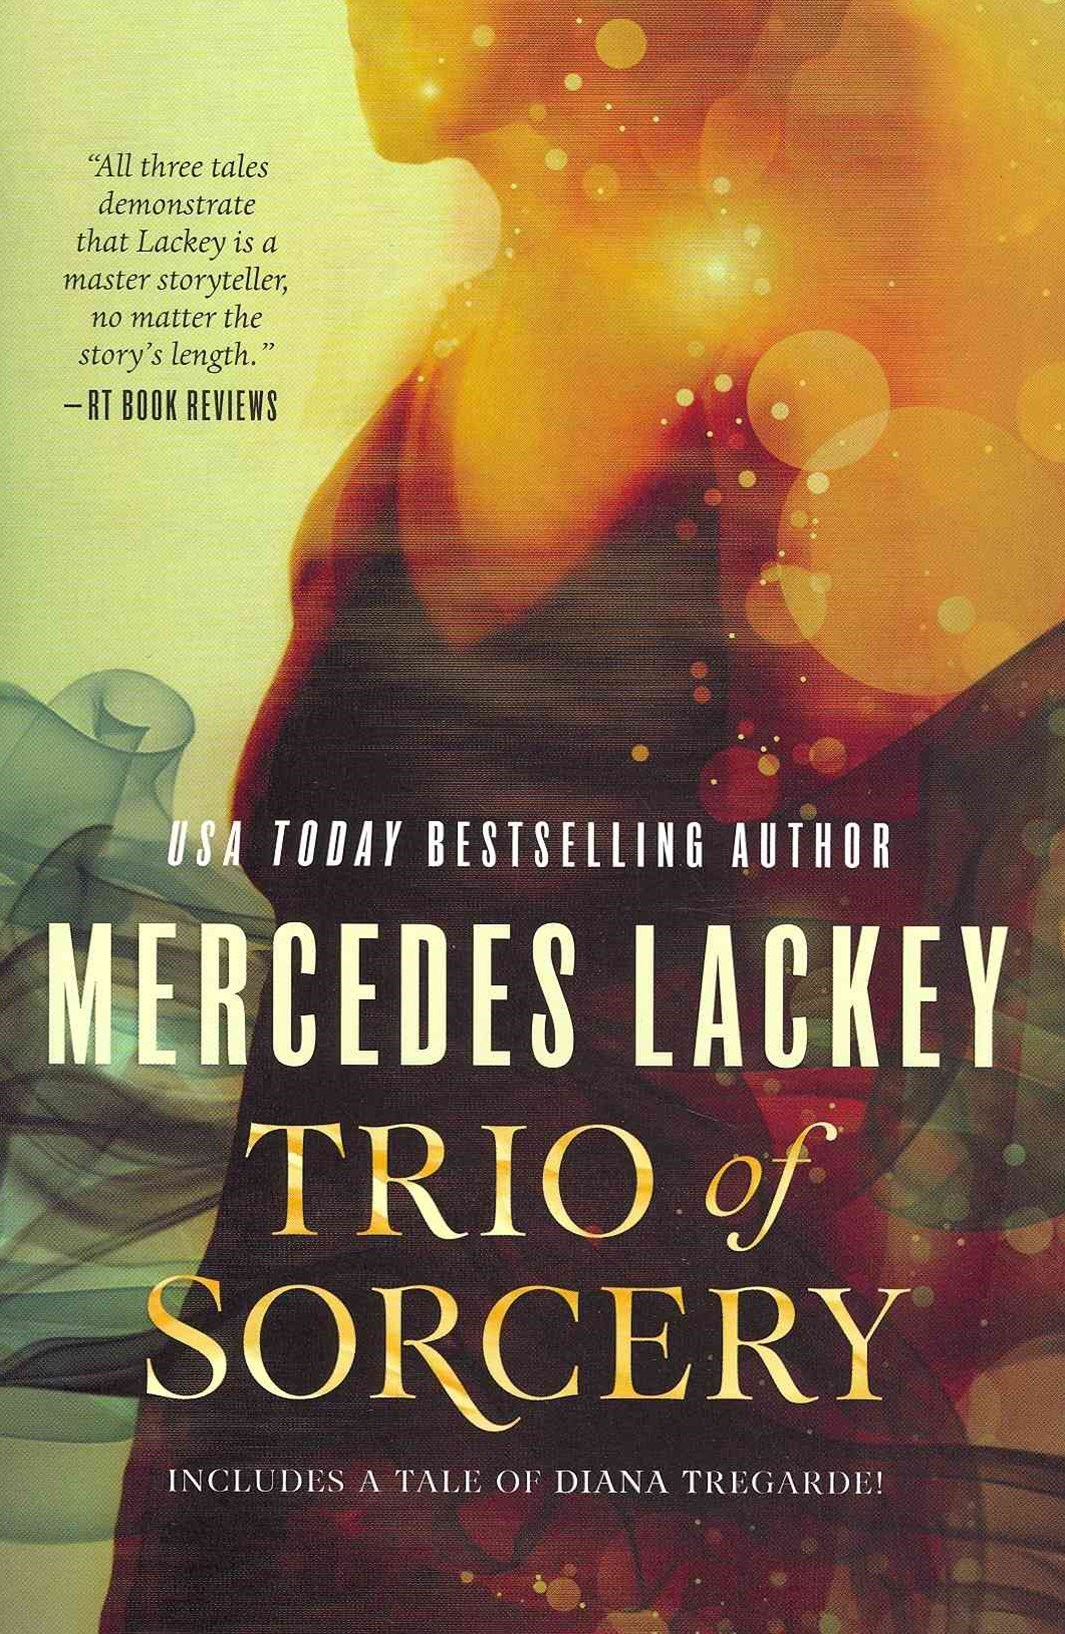 Trio of Sorcery